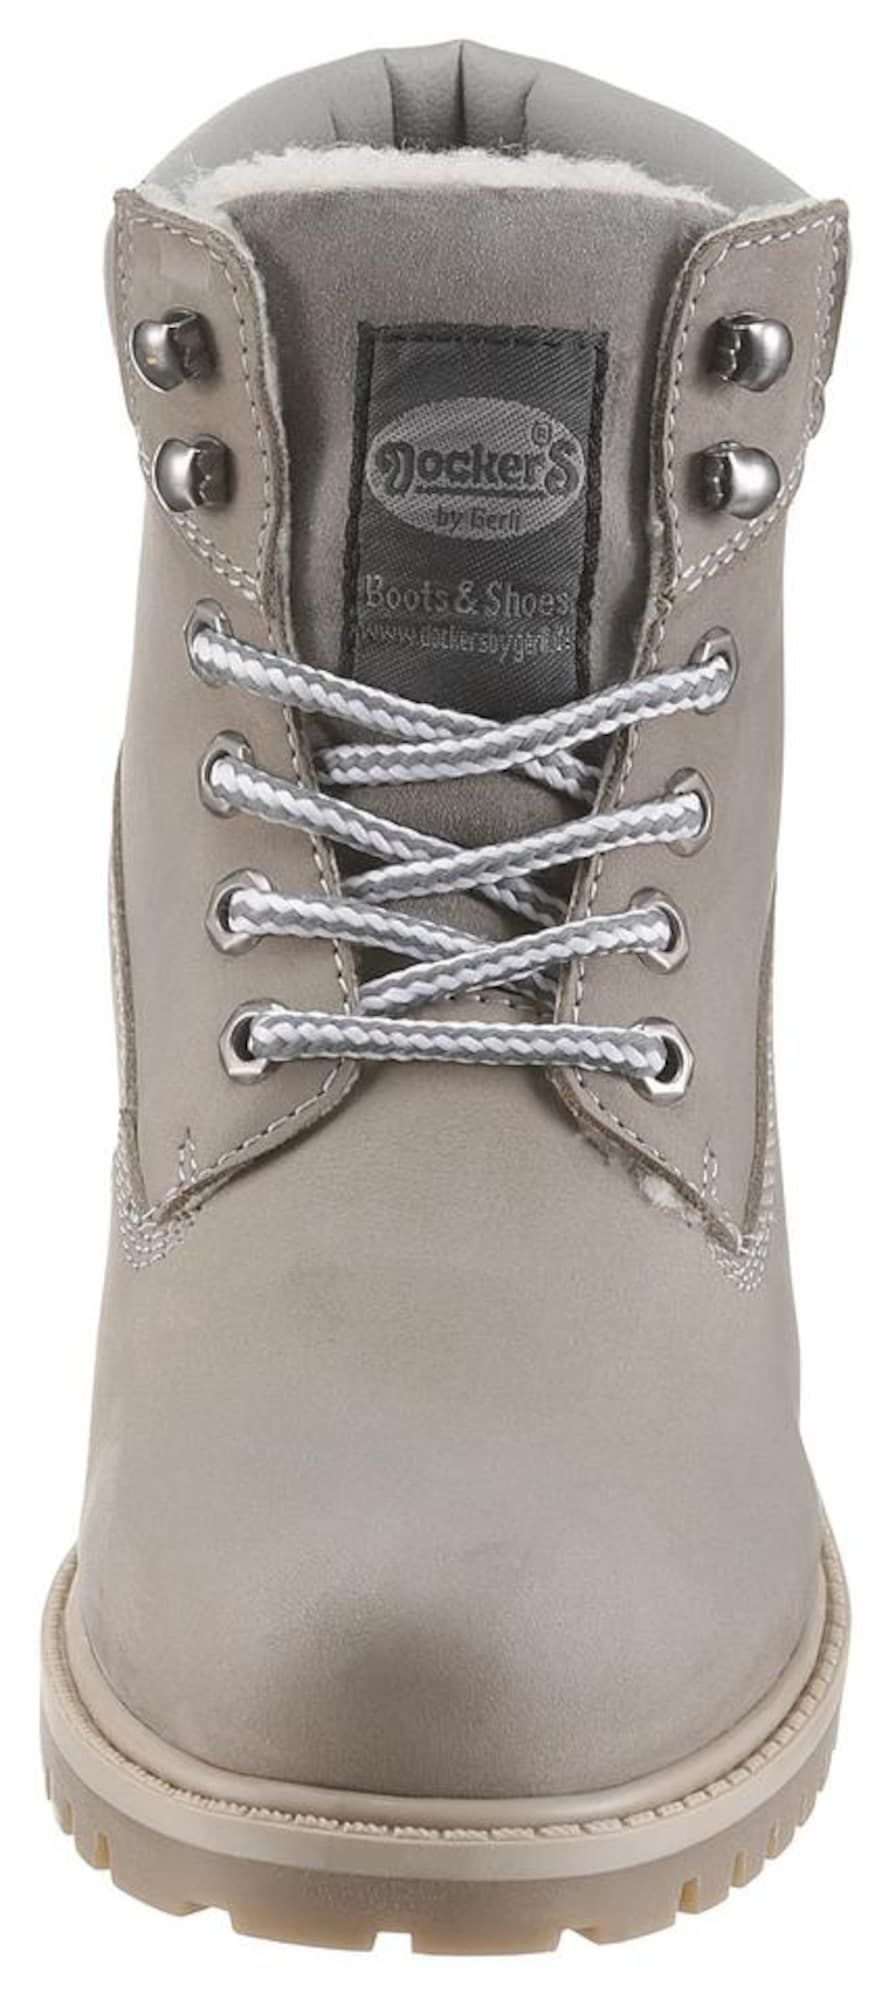 Dockers By Gerli Winterboots Damen Grau Grosse 41 Winterboots Damen Winterboots Und Dockers By Gerli